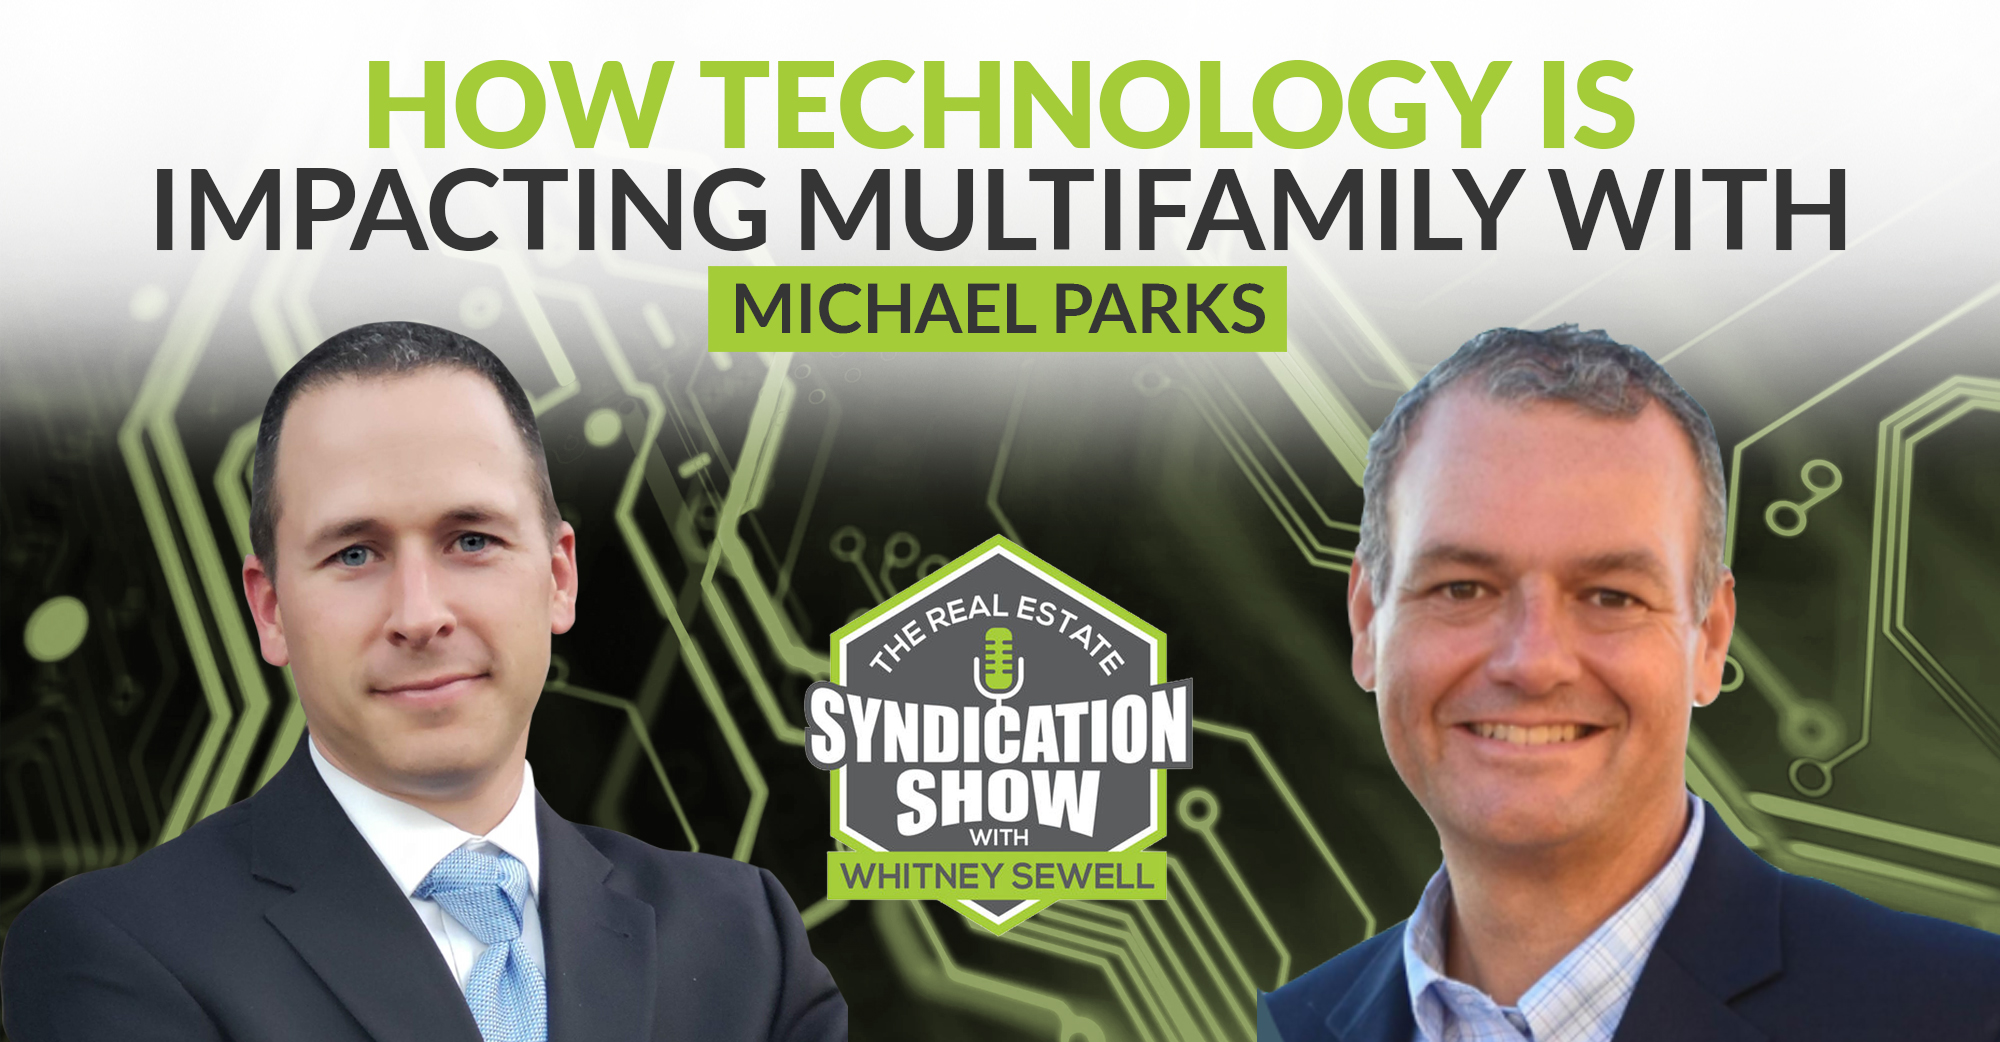 How Technology Is Impacting Multifamily With Michael Parks